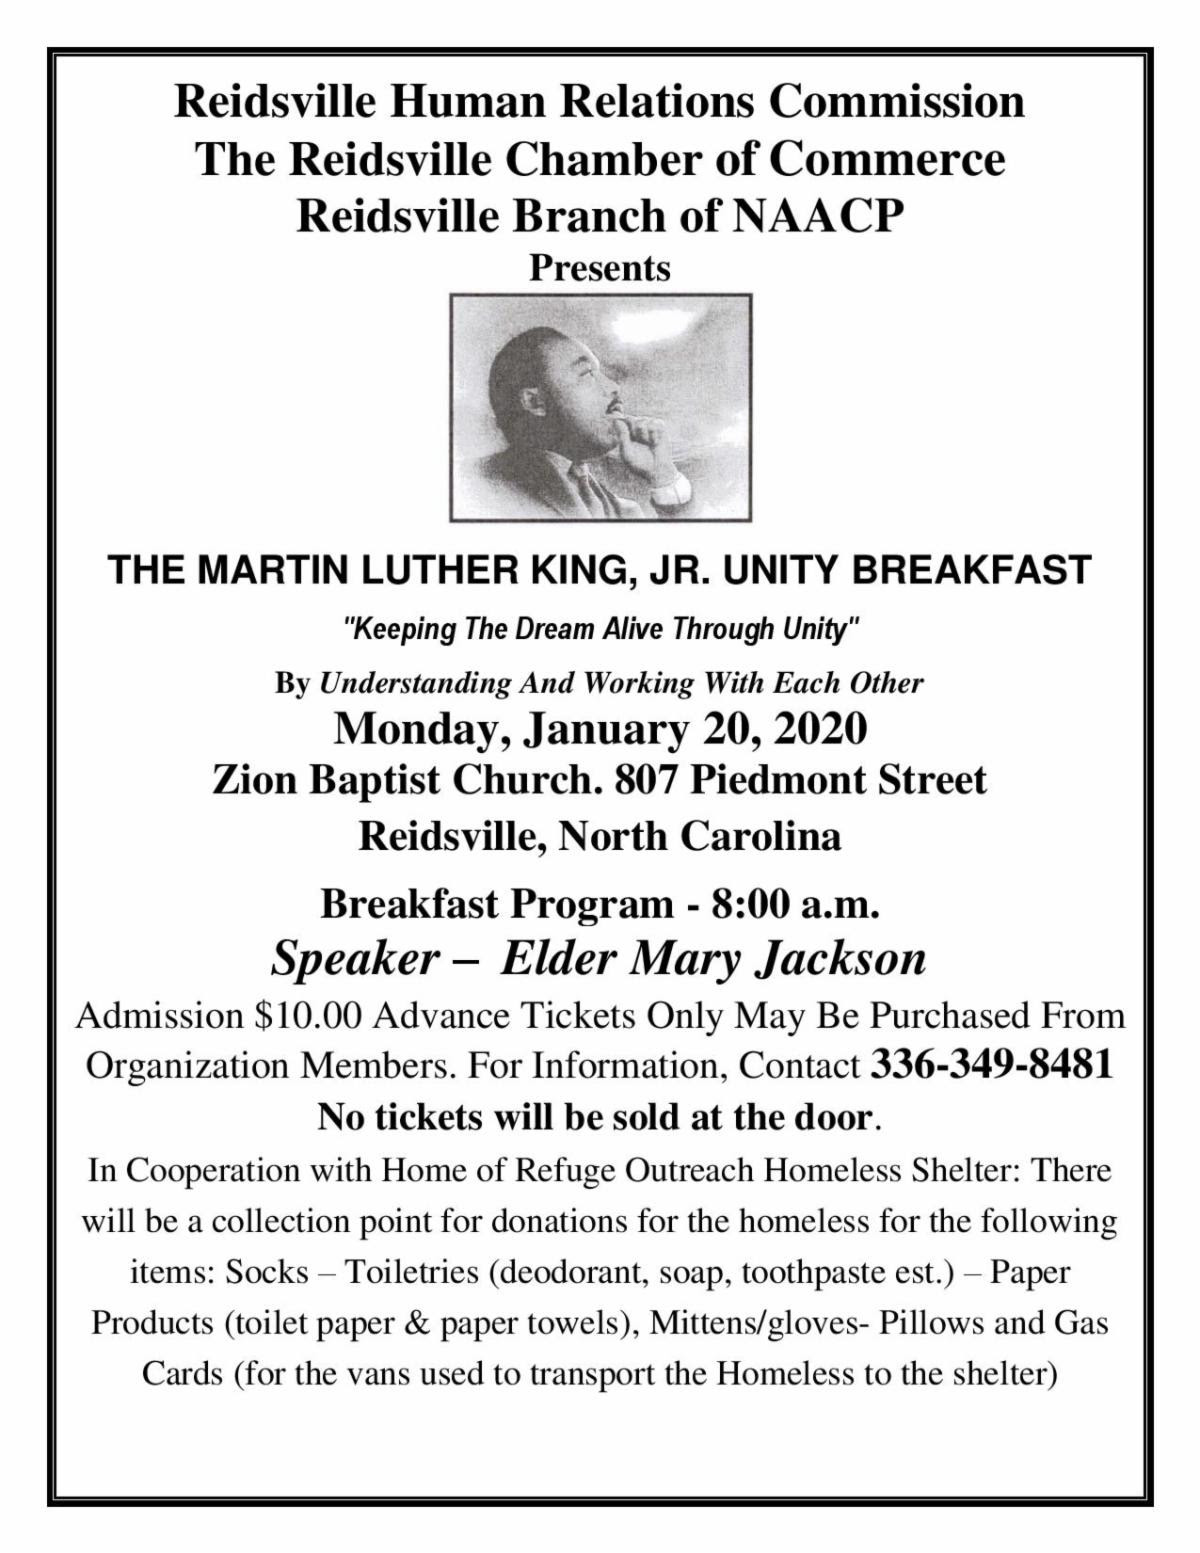 The 21st Annual Dr. Martin Luther King, Jr. Unity Breakfast